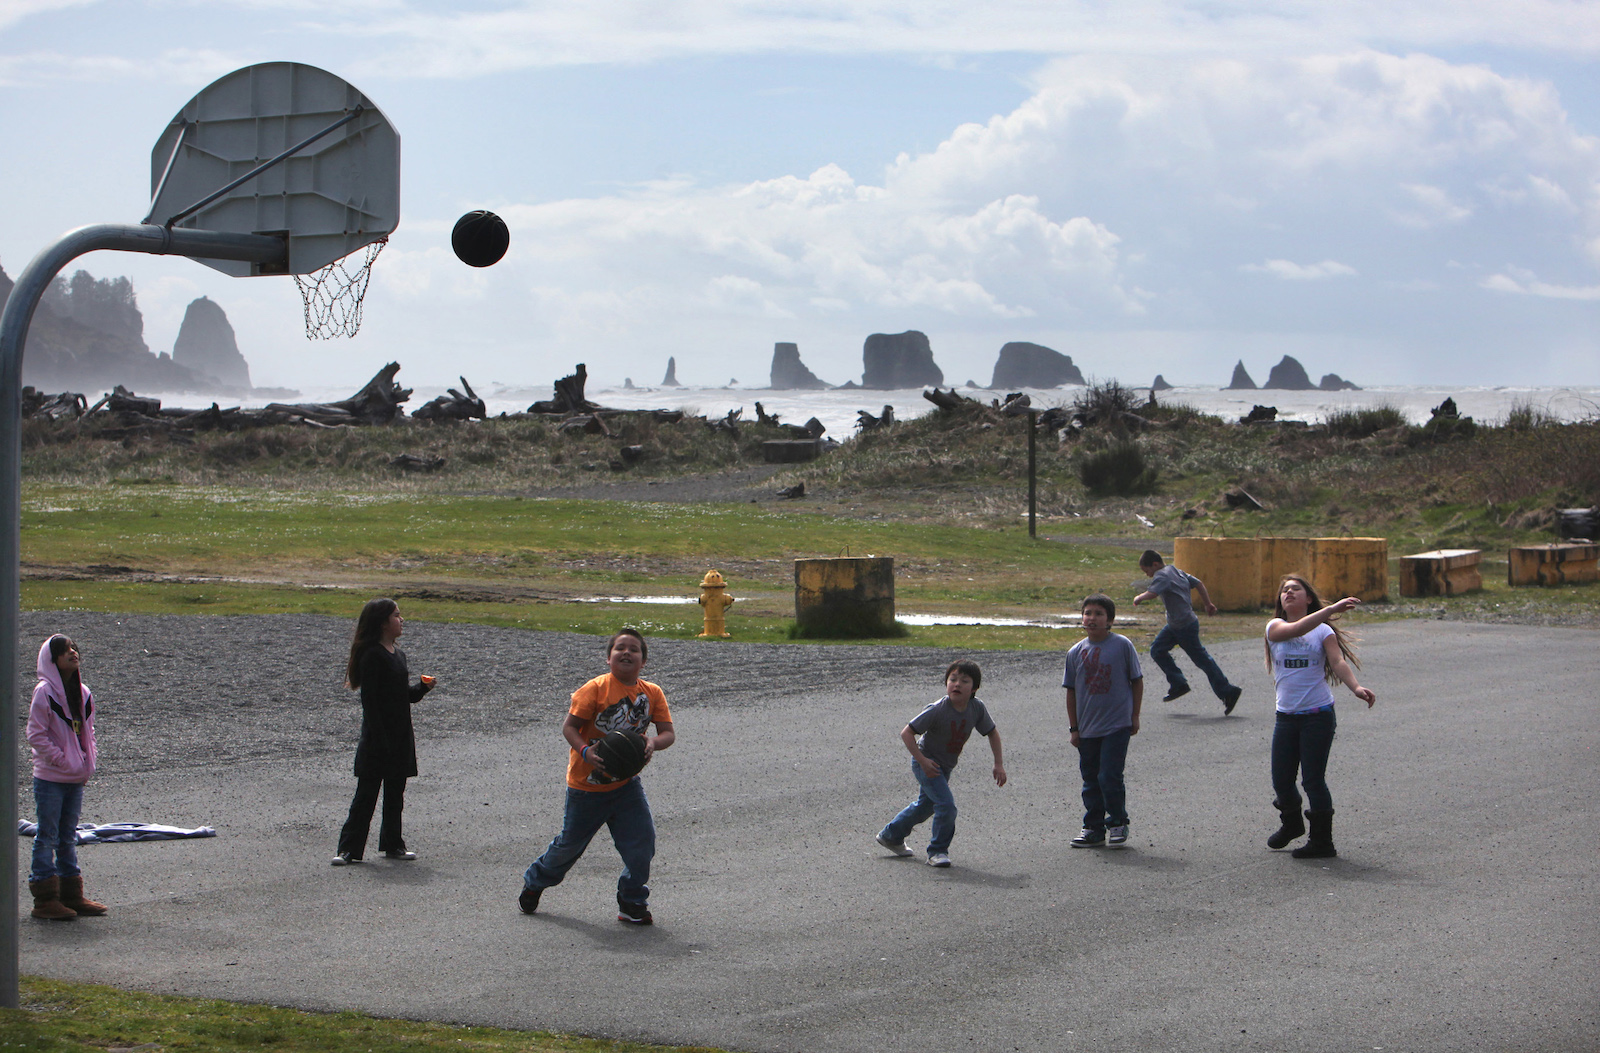 a group of kids play on a basketball court located near a rocky beach